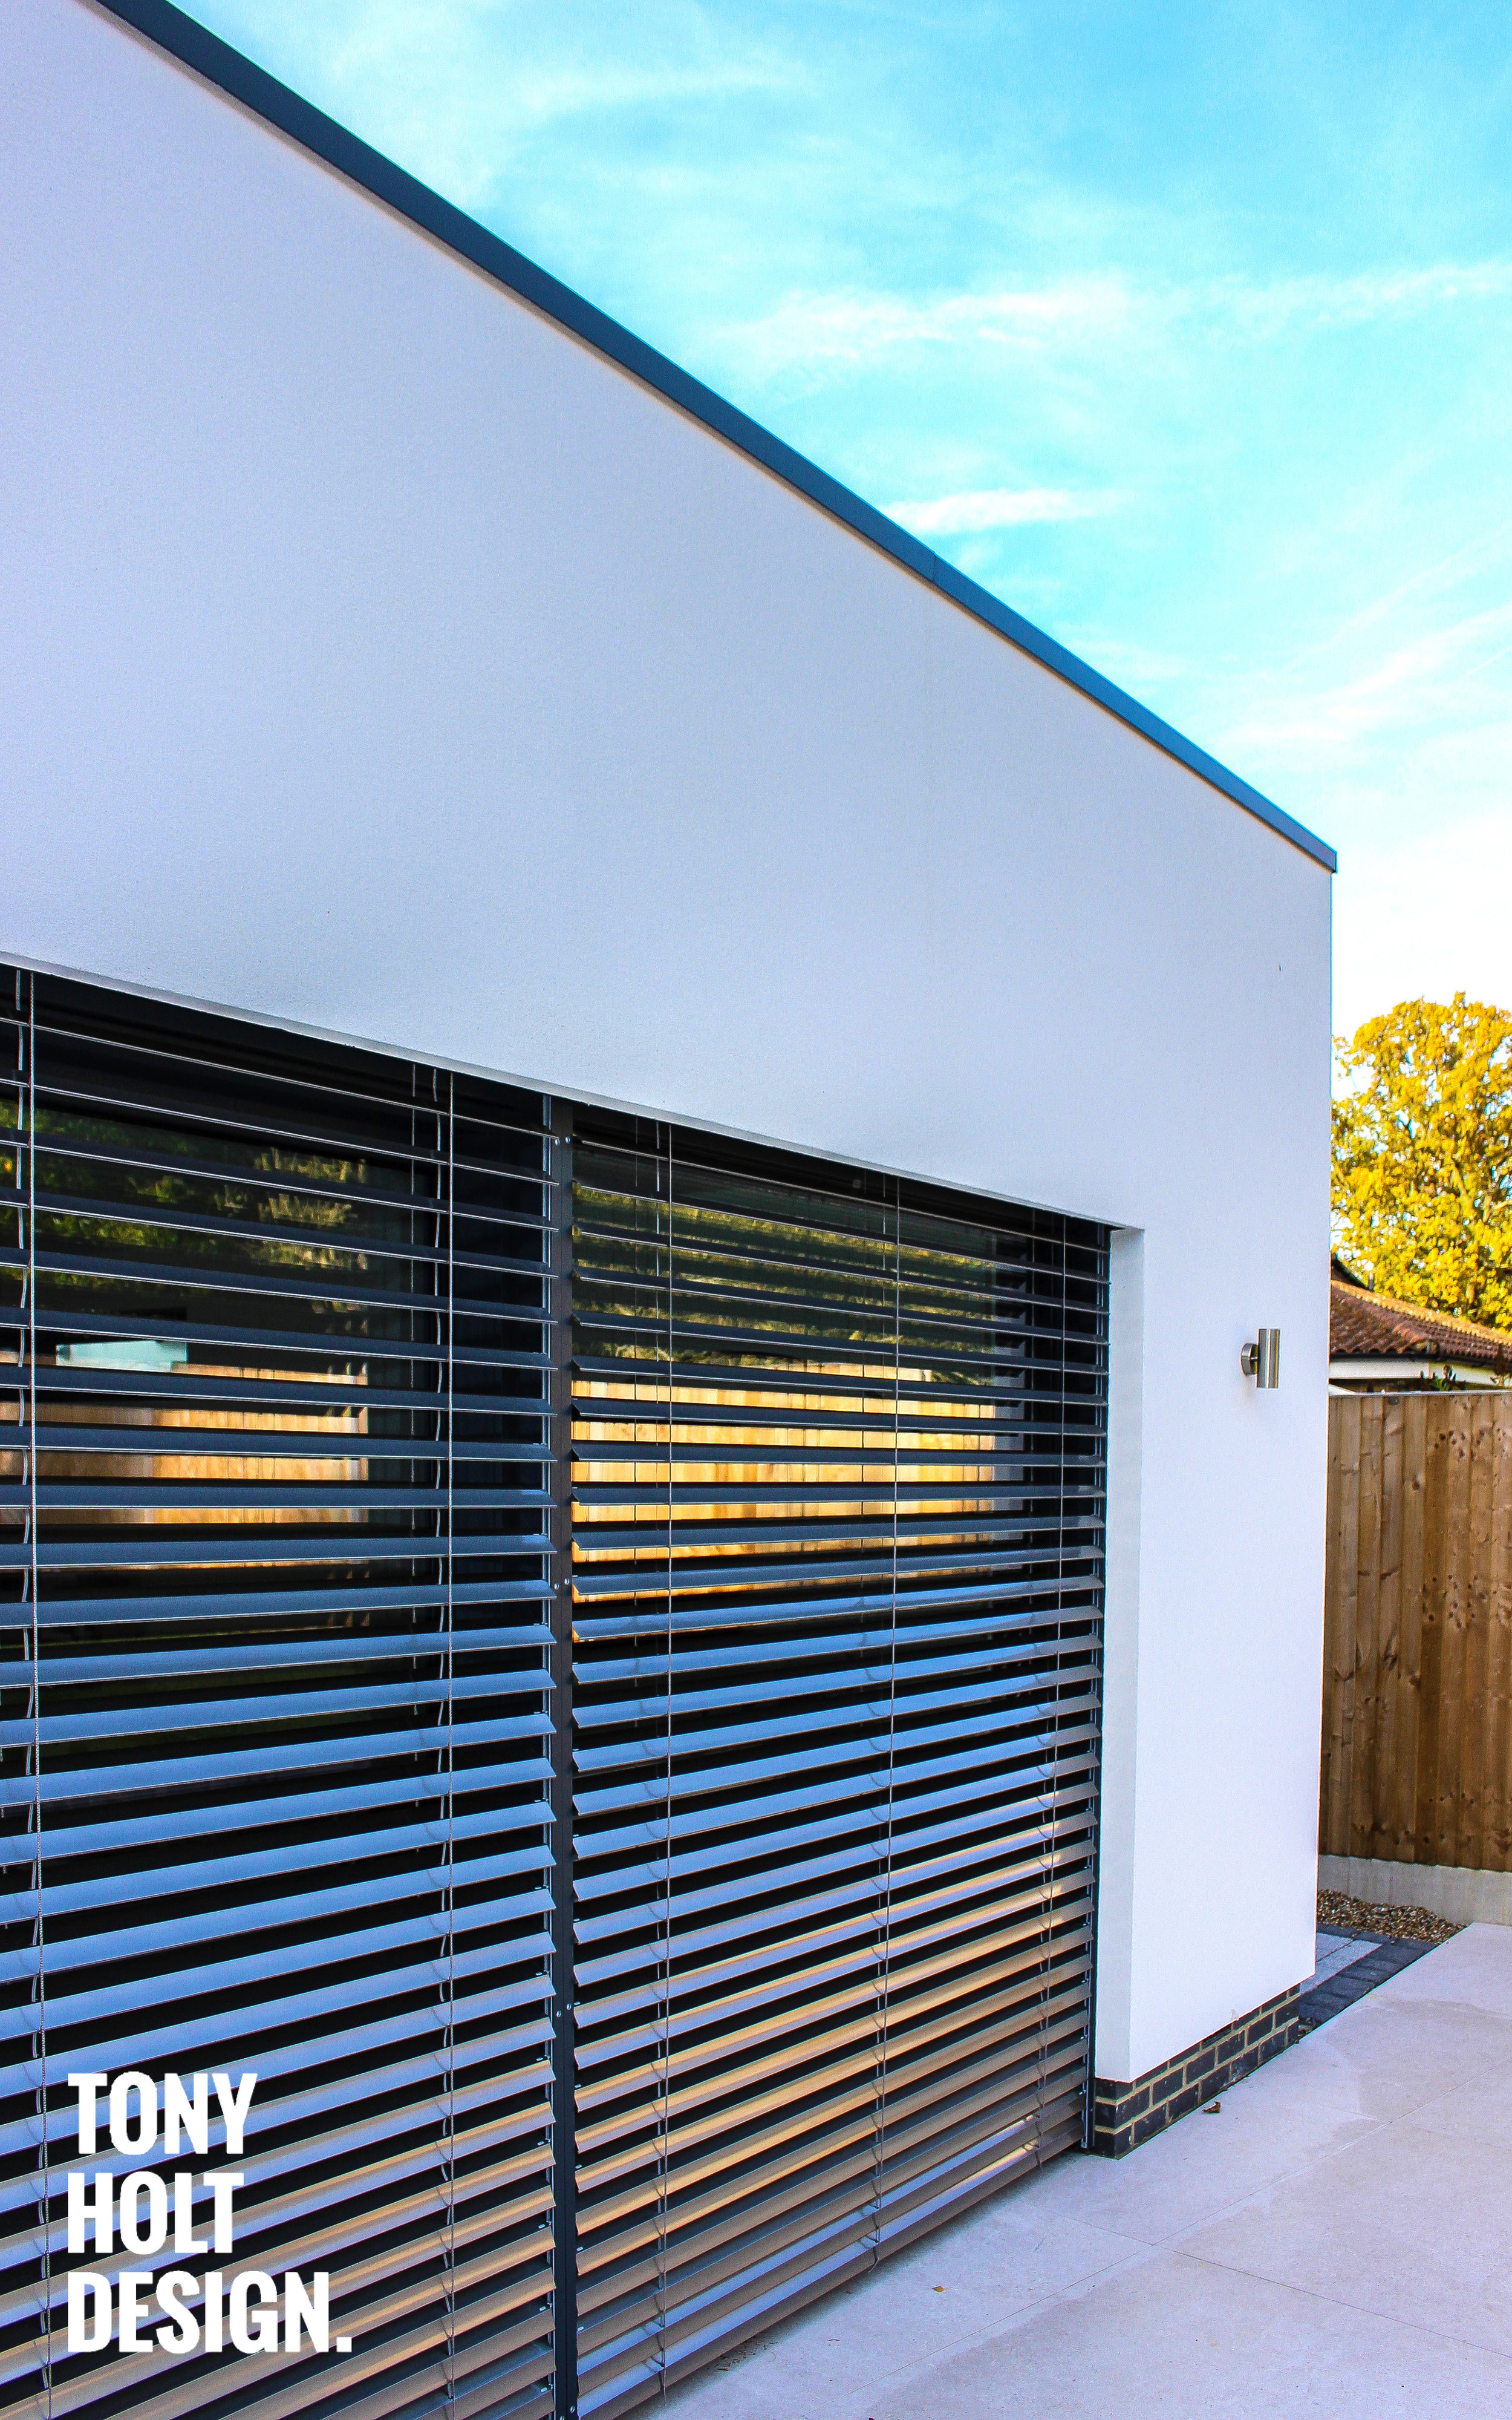 Tony Holt Design_Self Build_New Build_Exterior_01_WEB19.jpg